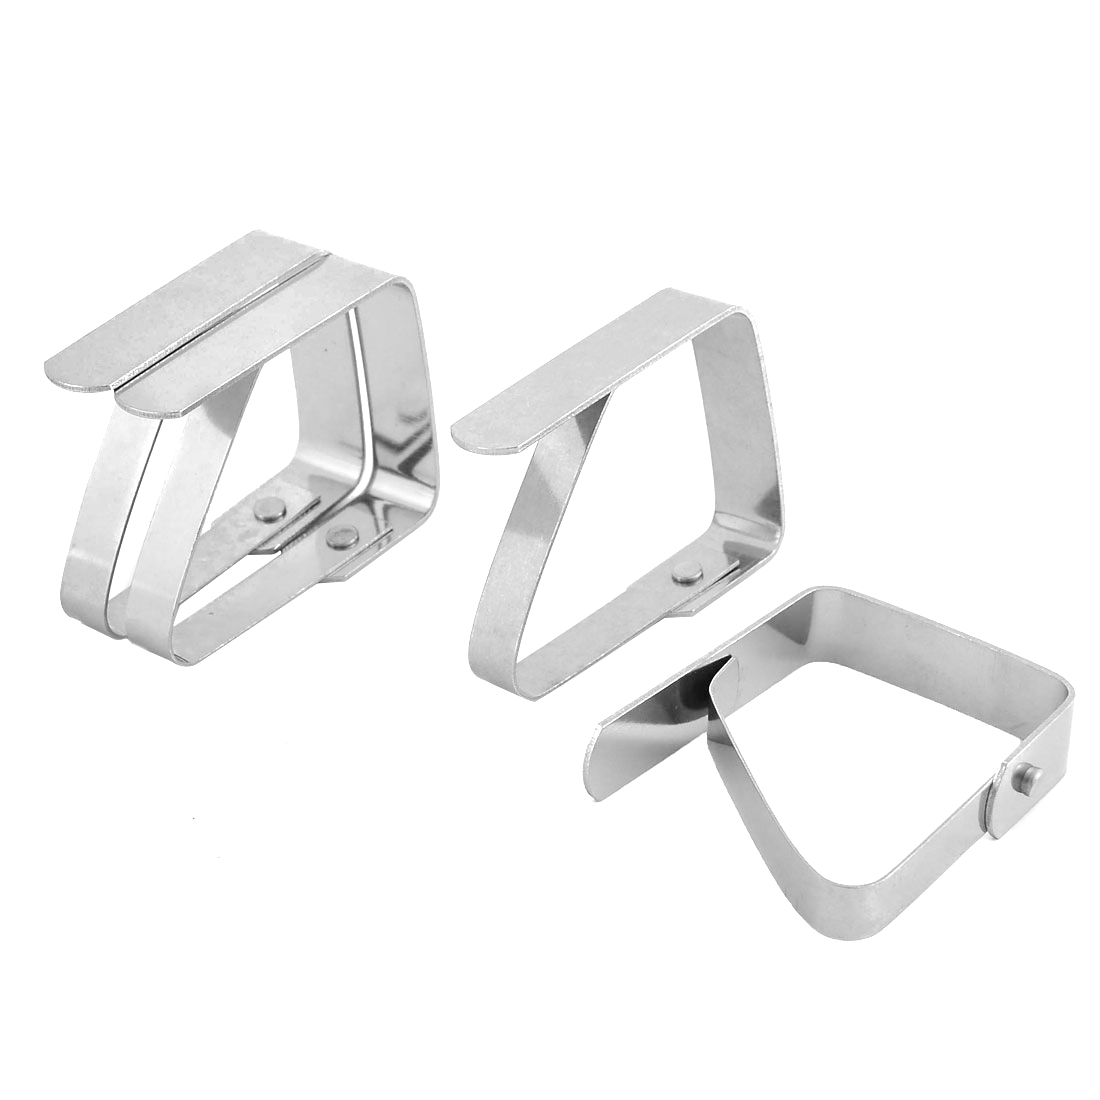 Home Kitchen Teapot Stainless Steel Table Cloth Holders Clip Clamp Silver Tone 4pcs